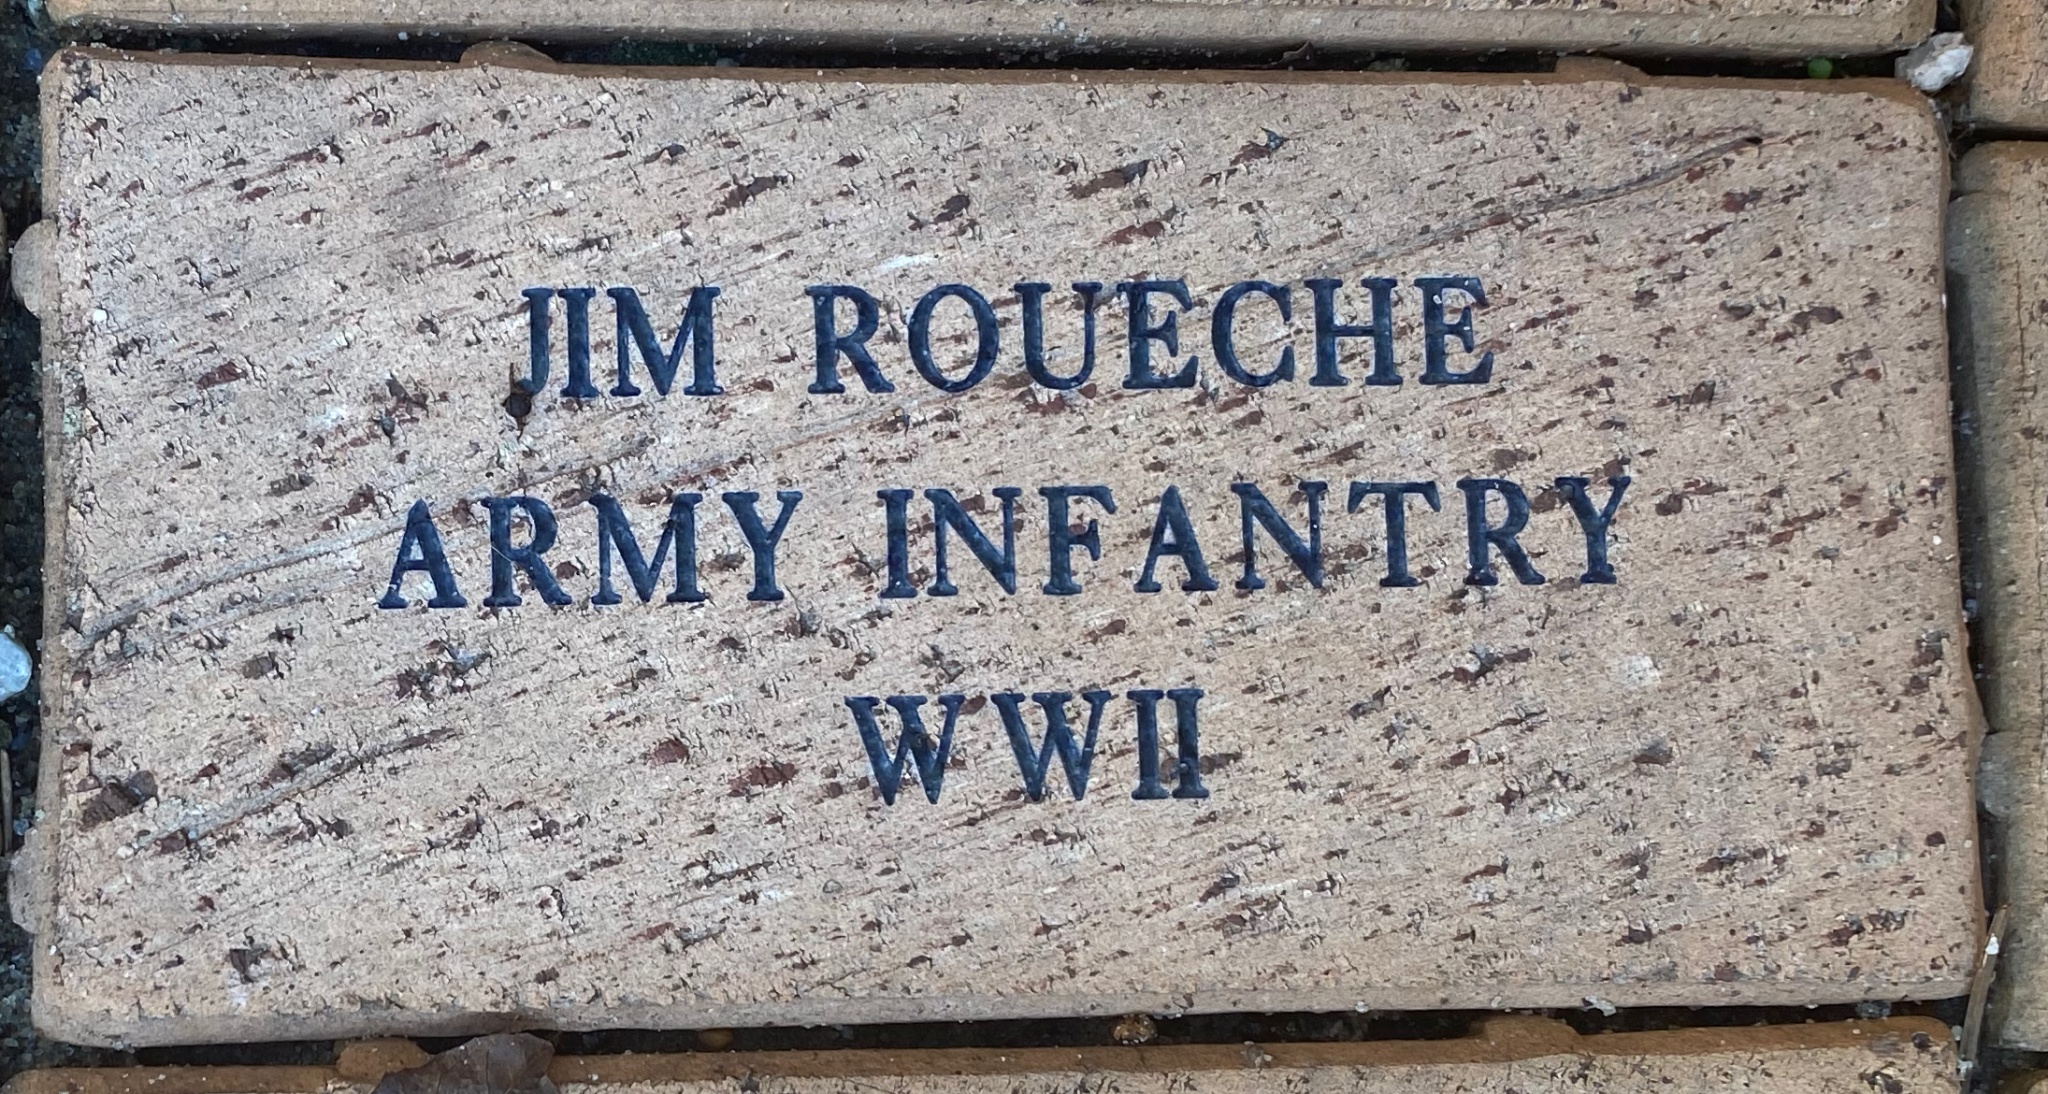 JIM ROUECHE ARMY INFANTRY WWII